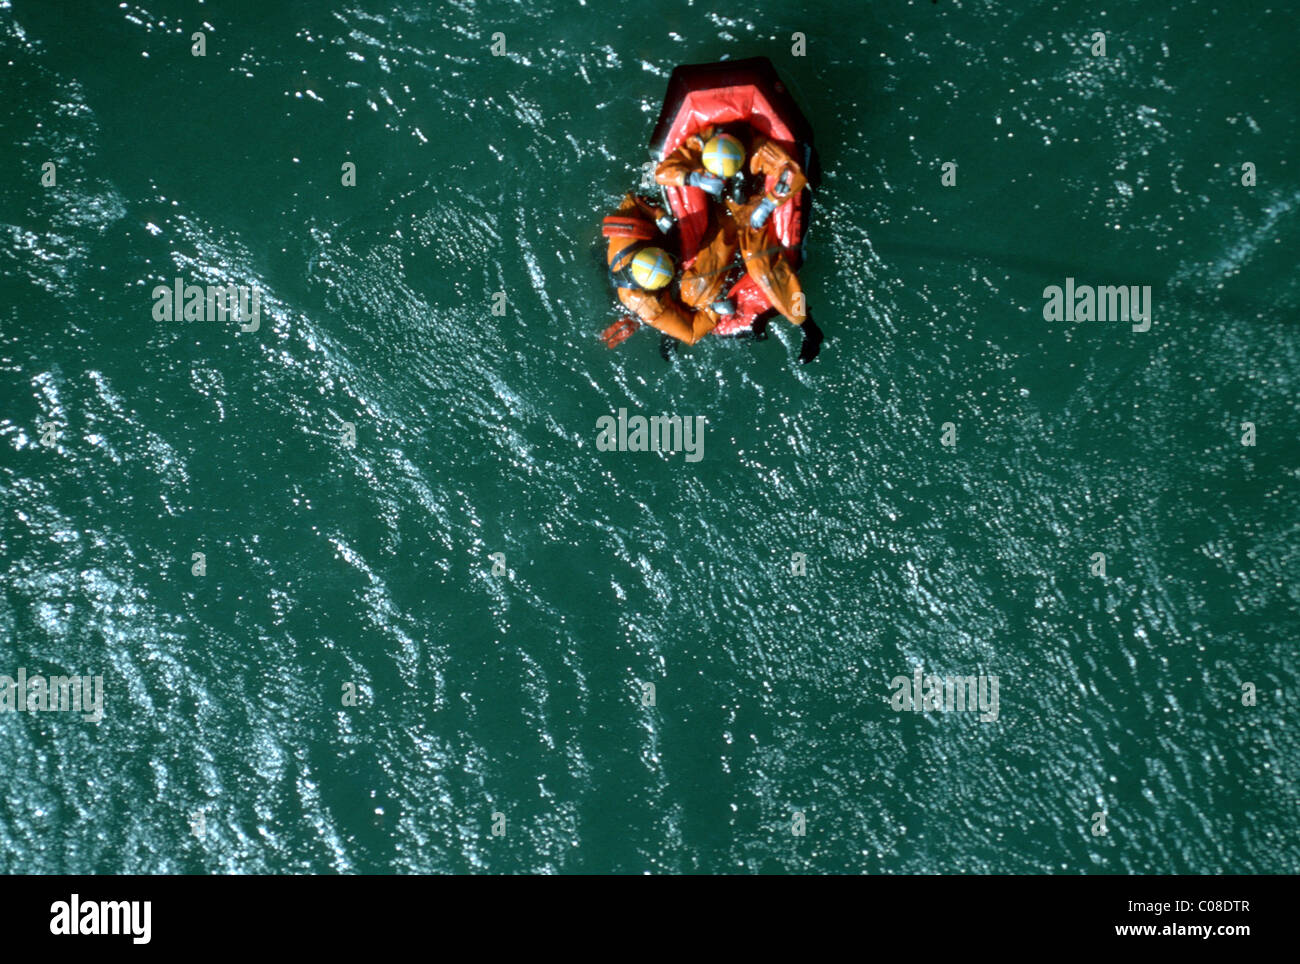 Search and rescue with casualty being winched up to a helicopter - Stock Image